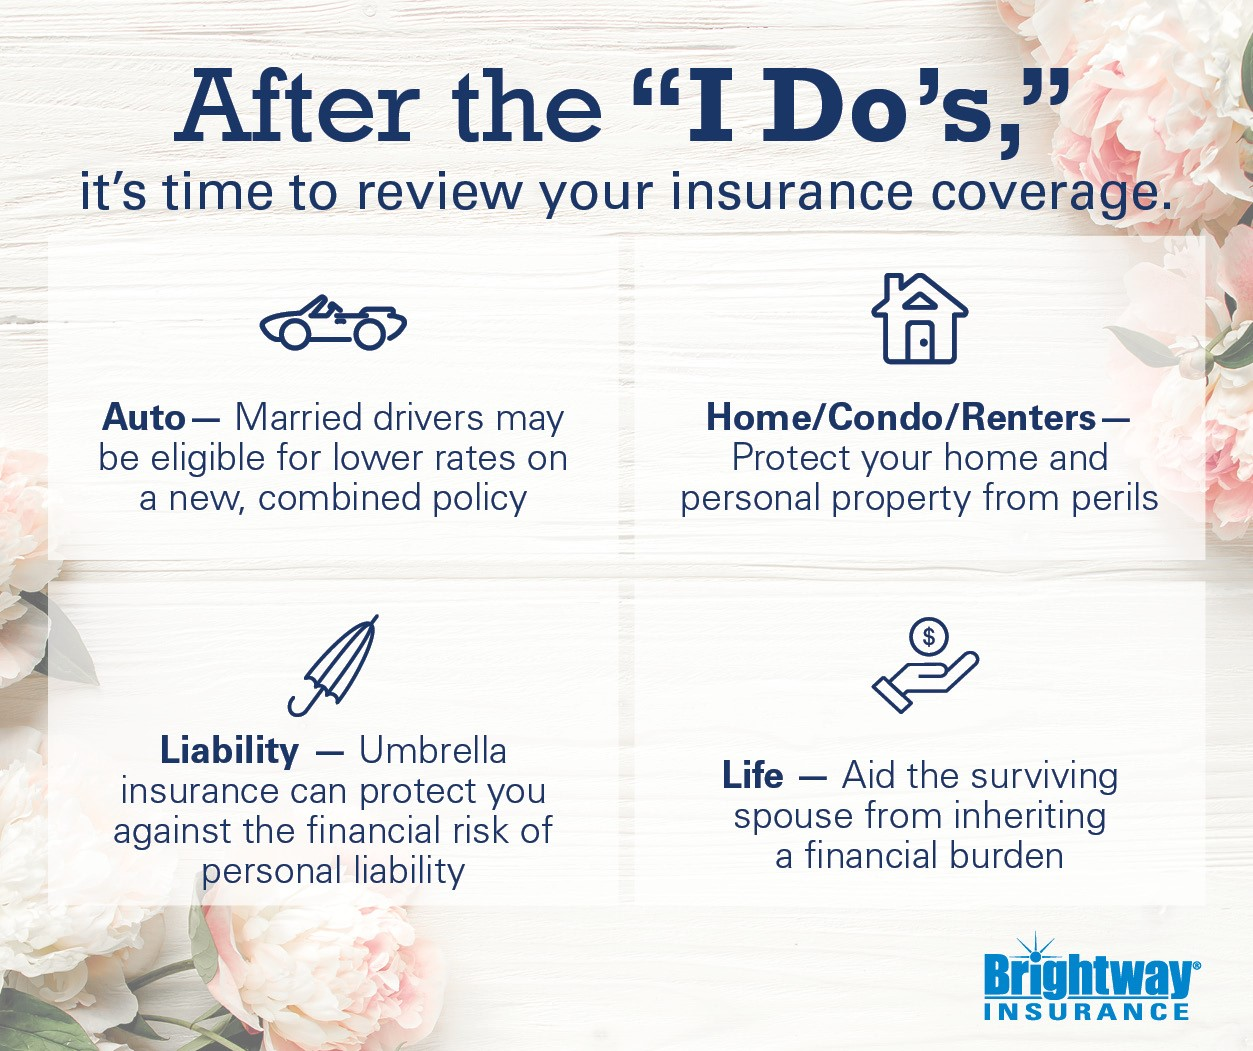 An infographic with insurance tips. After the I dos it's time to review your coverage. Auto - Married drivers may be eligible for a new, combined auto policy. Home/Condo/Renters - Protect your home and personal property from perils. Liability - Umbrella insurance can protect you against the financial risk of personal liability. Life - Aid the surviving spouse from inheriting a financial burden.